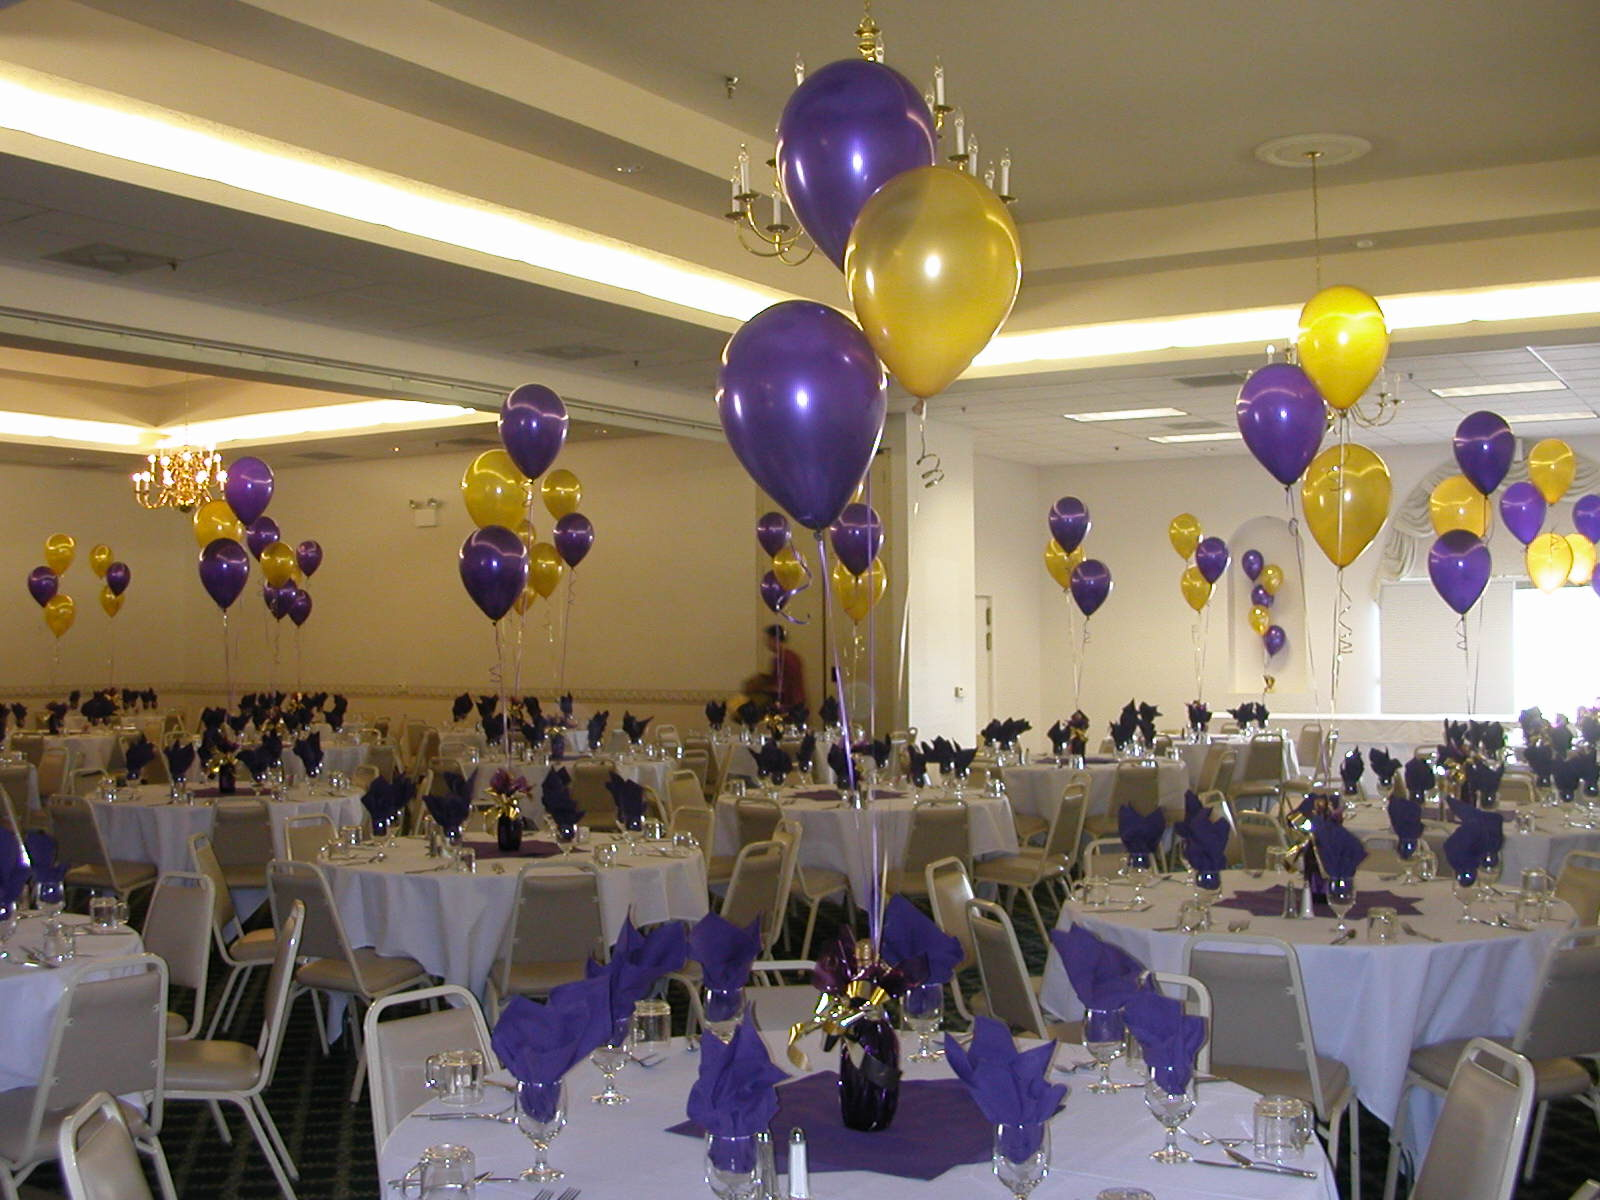 Graduation balloon decorations party favors ideas for Balloon decoration ideas for birthdays